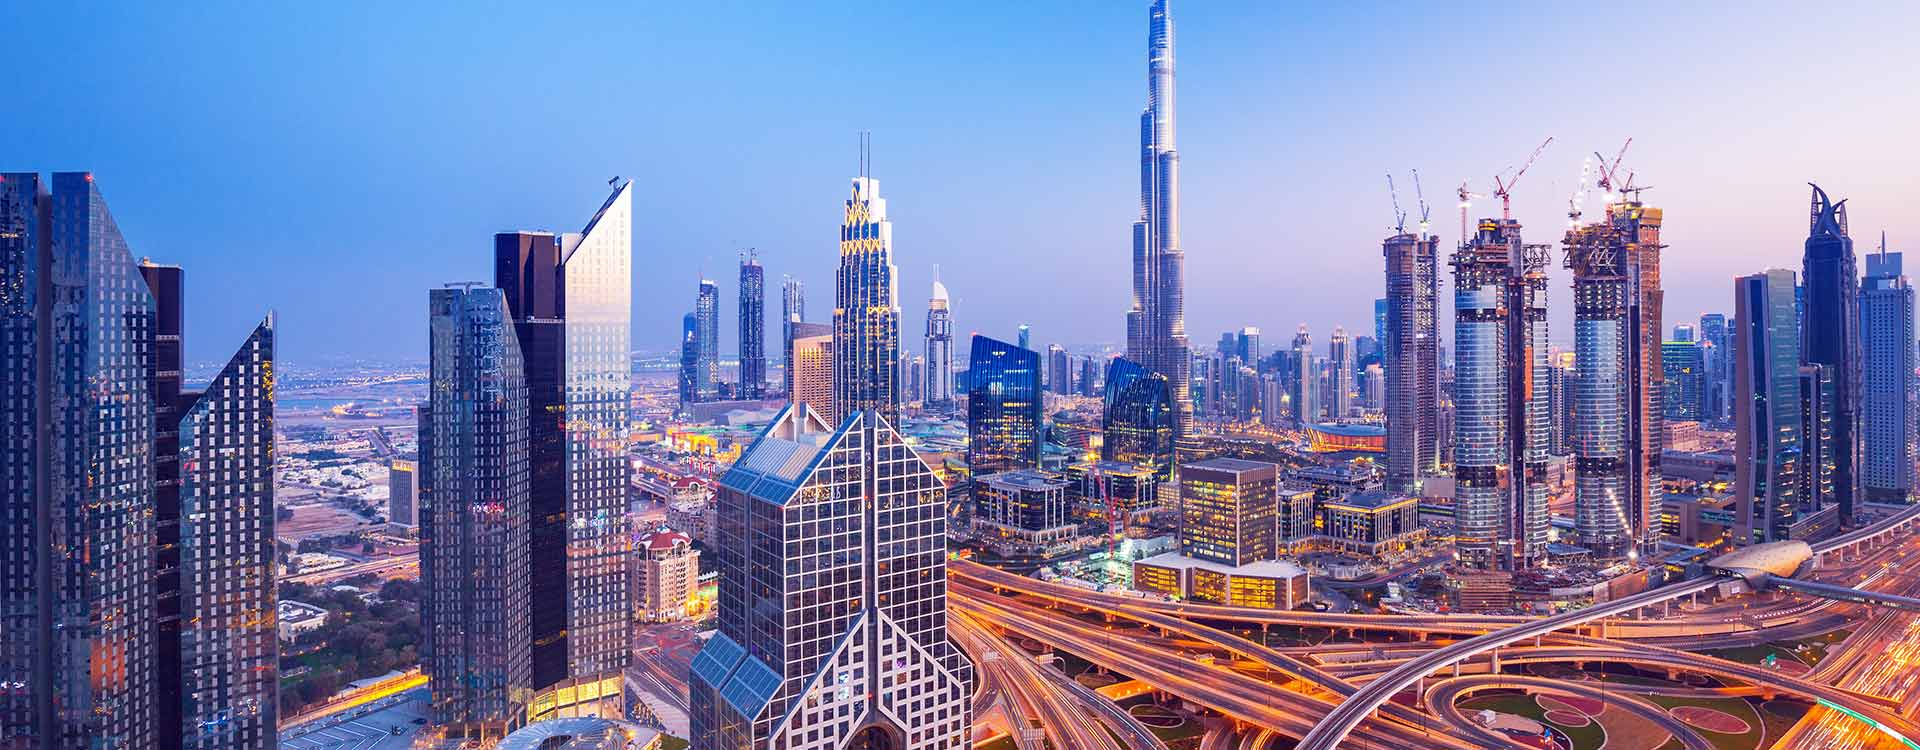 6 Astounding Places to Visit in Dubai in 2020 | Cheapbestfares